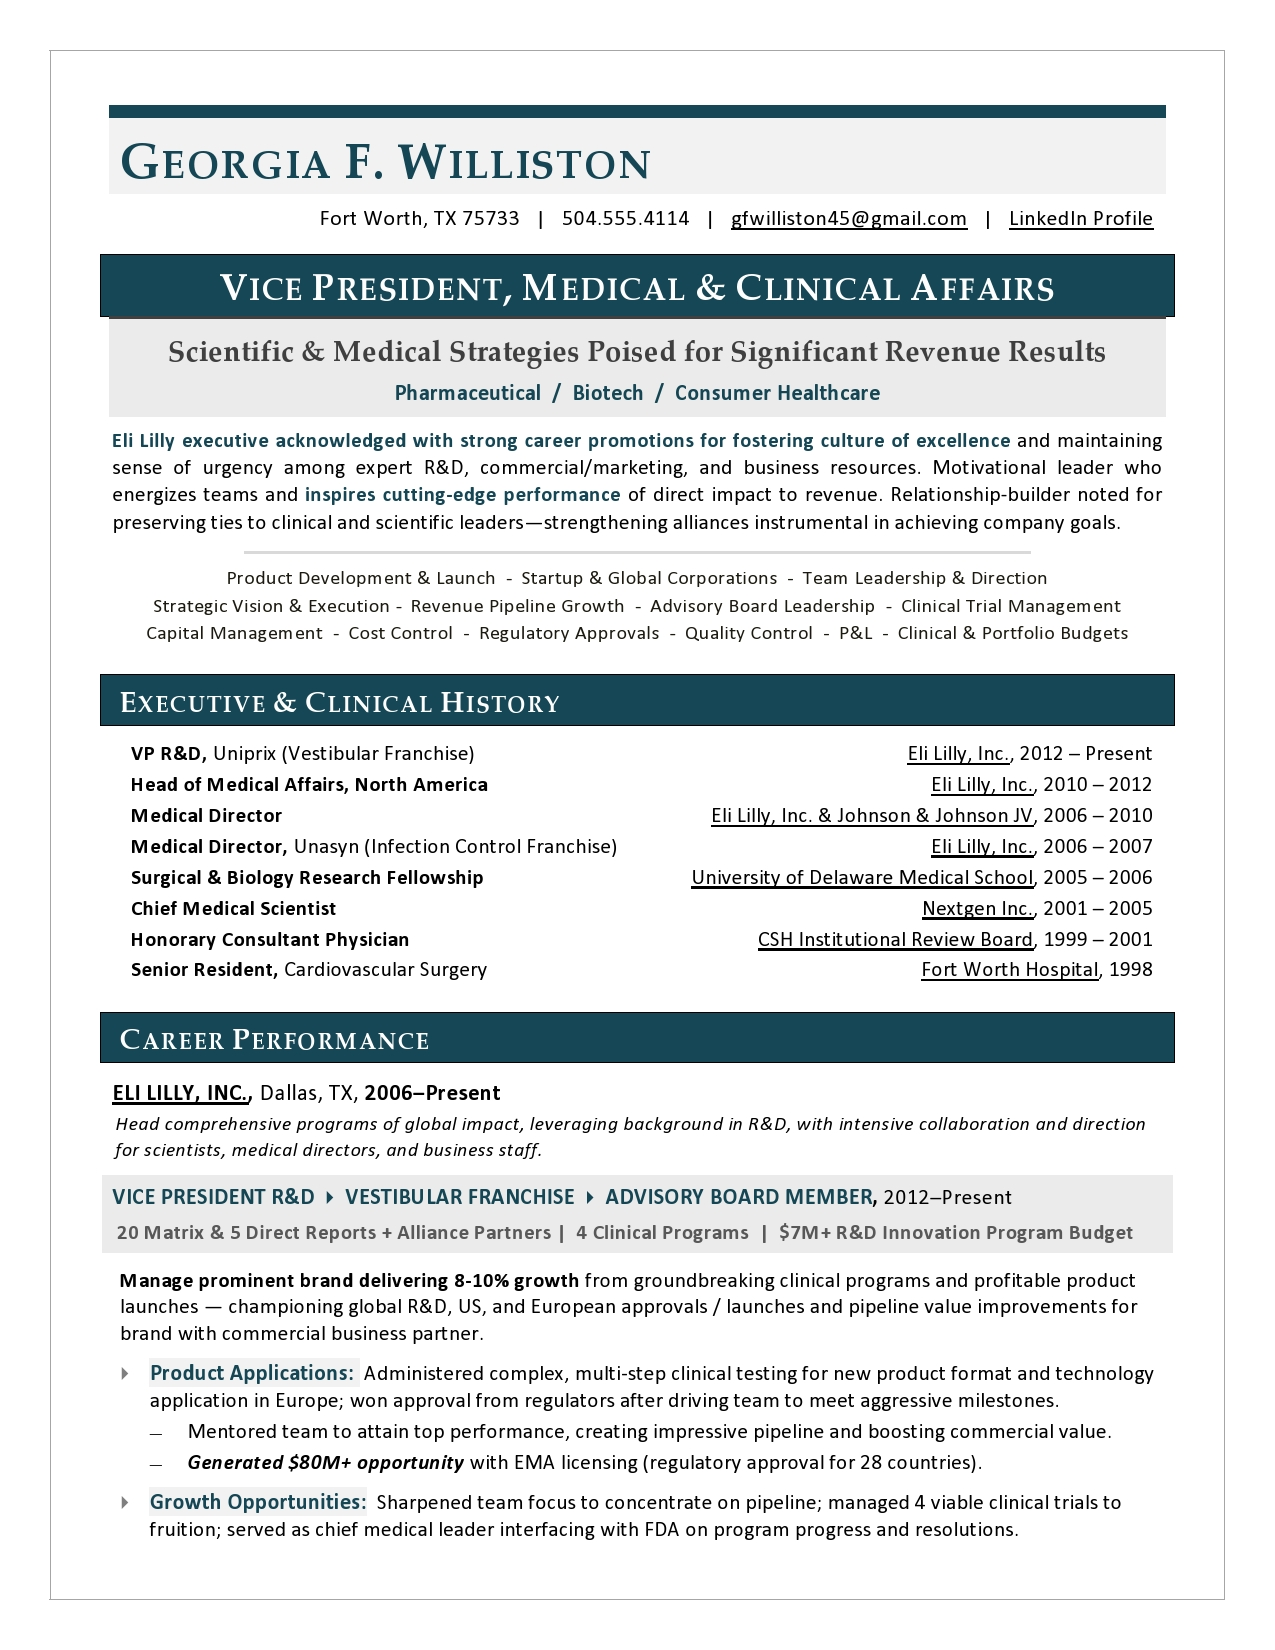 VP Medical Affairs Resume by Laura Smith-Proulx